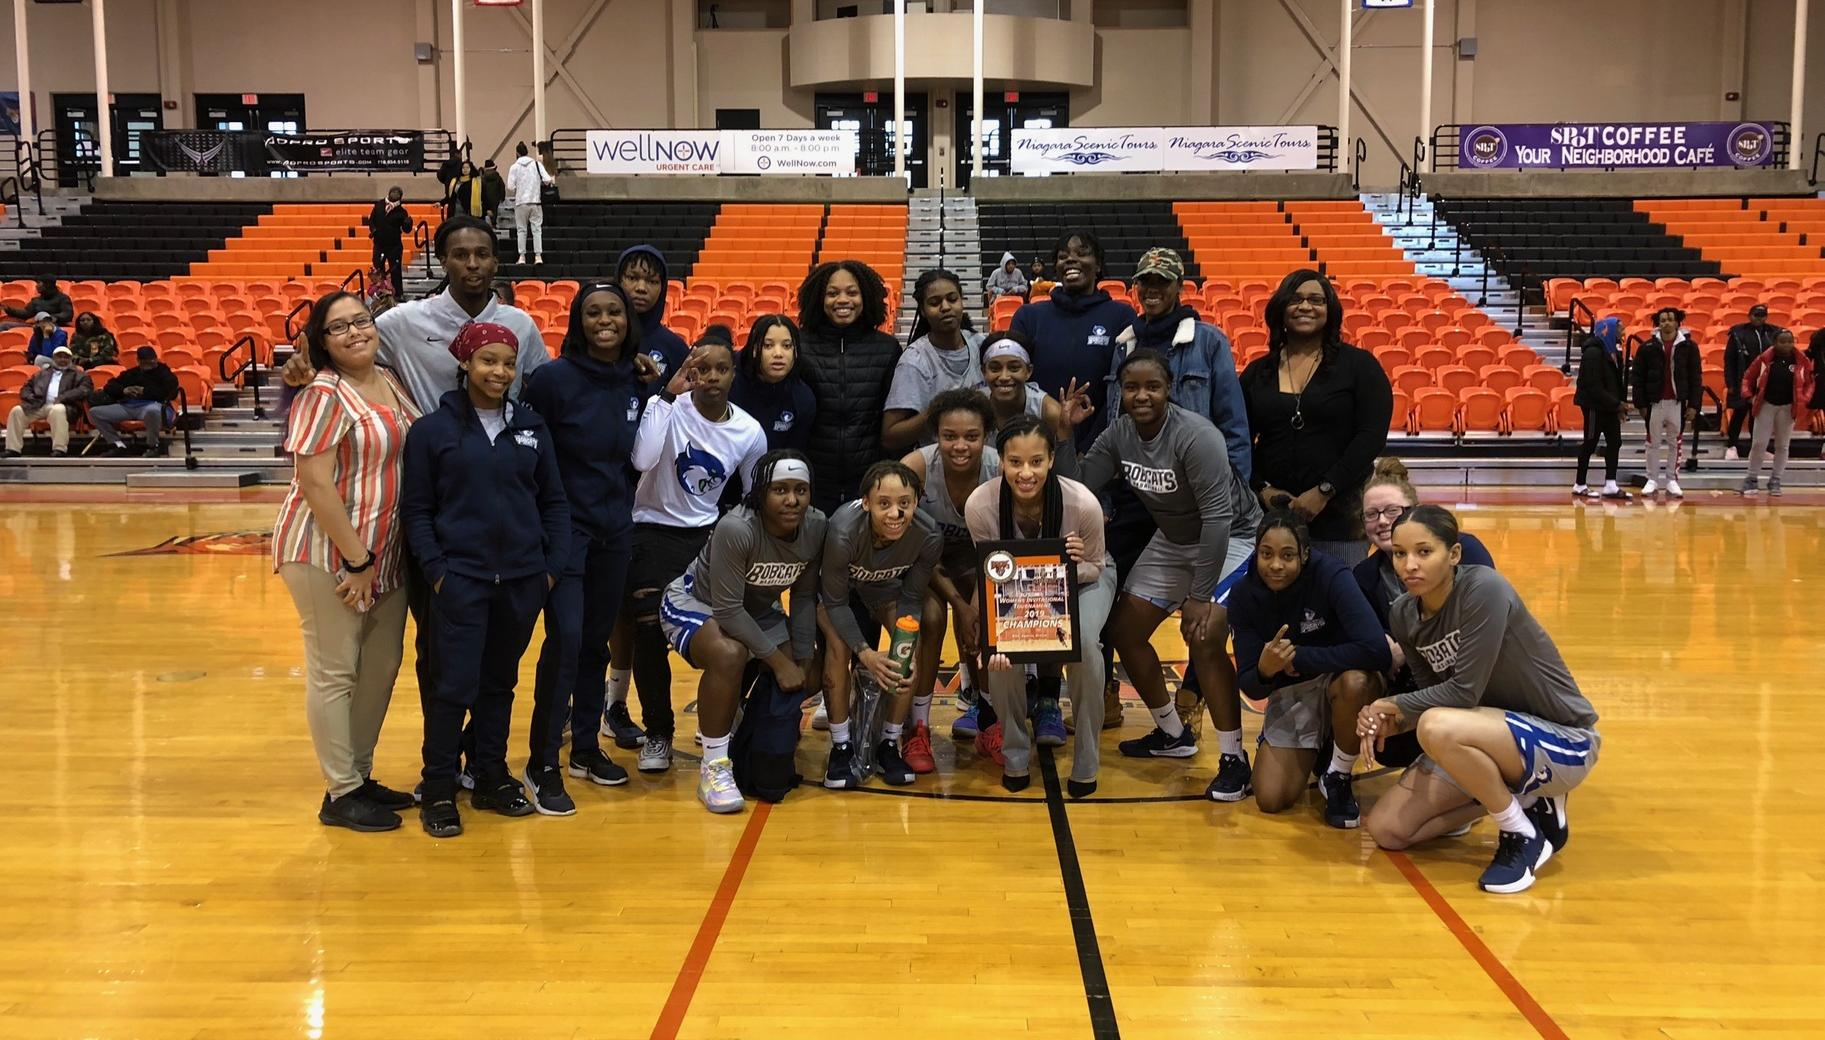 Furious Late Rally Propels Bobcats to Betty Abgott Invitational Title